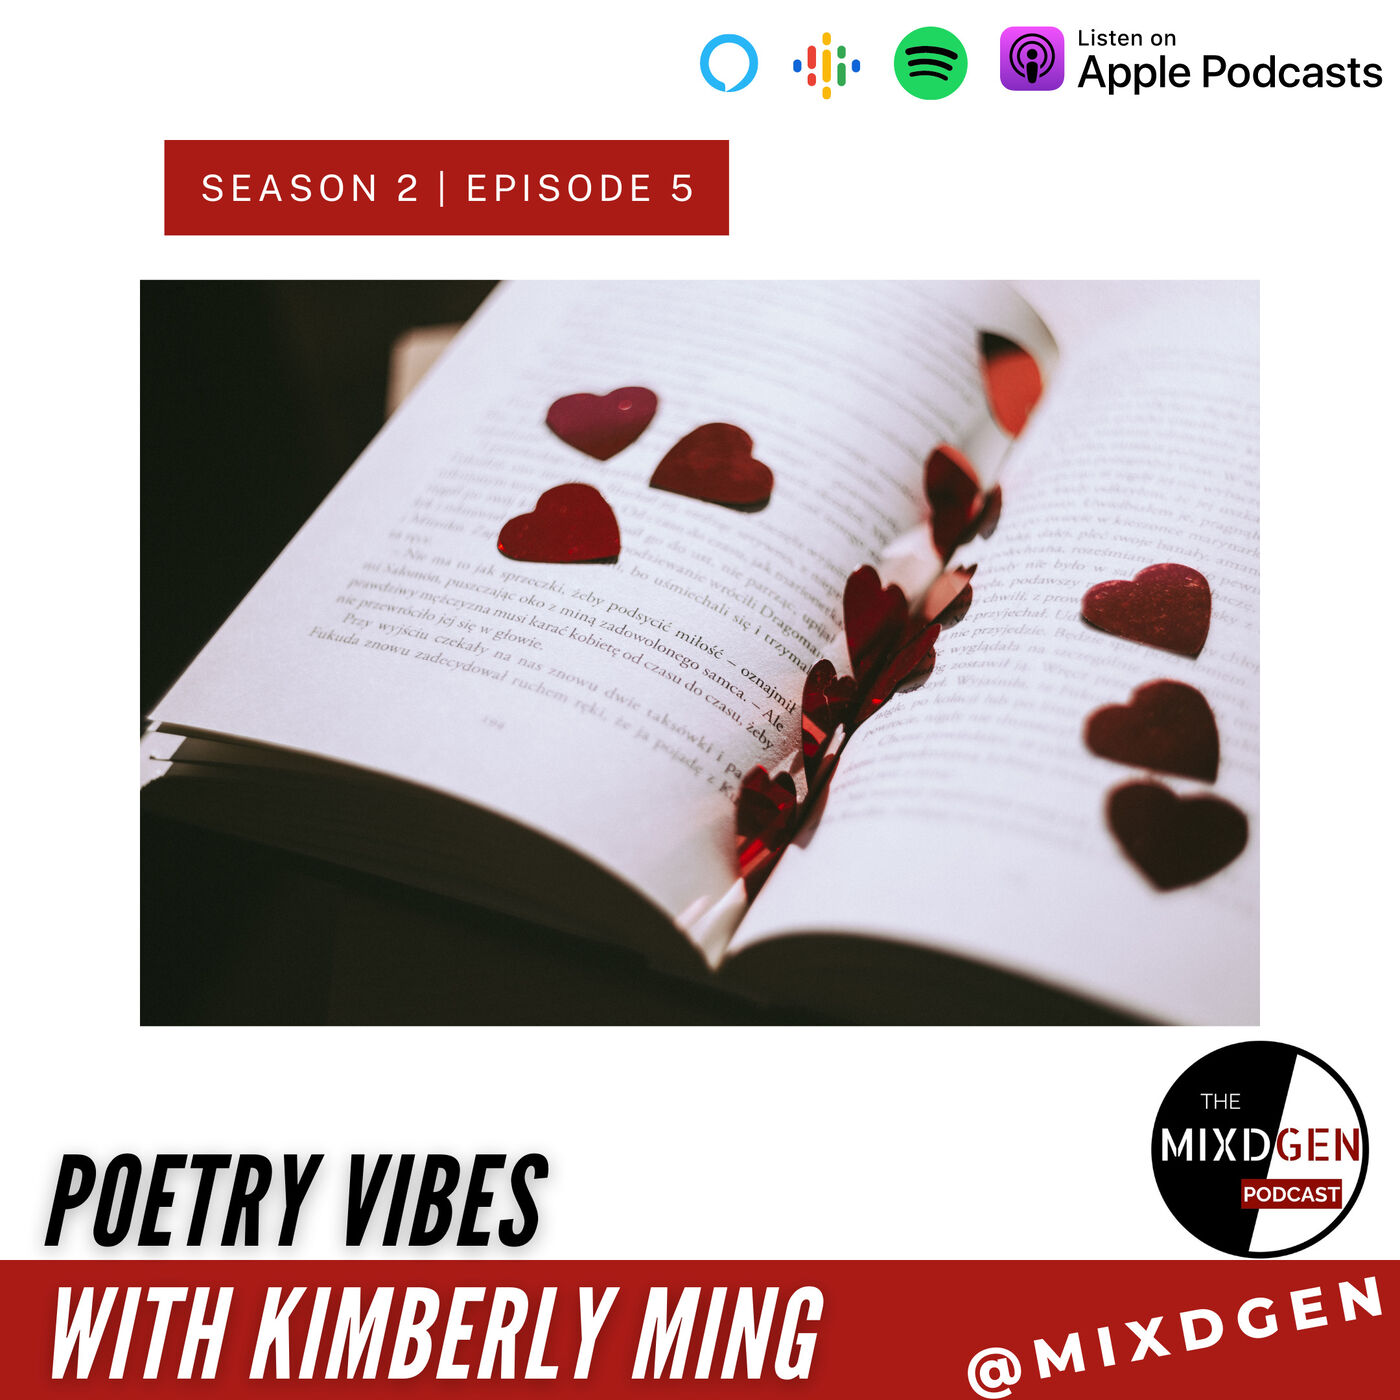 Poetry Vibes with Kimberly Ming